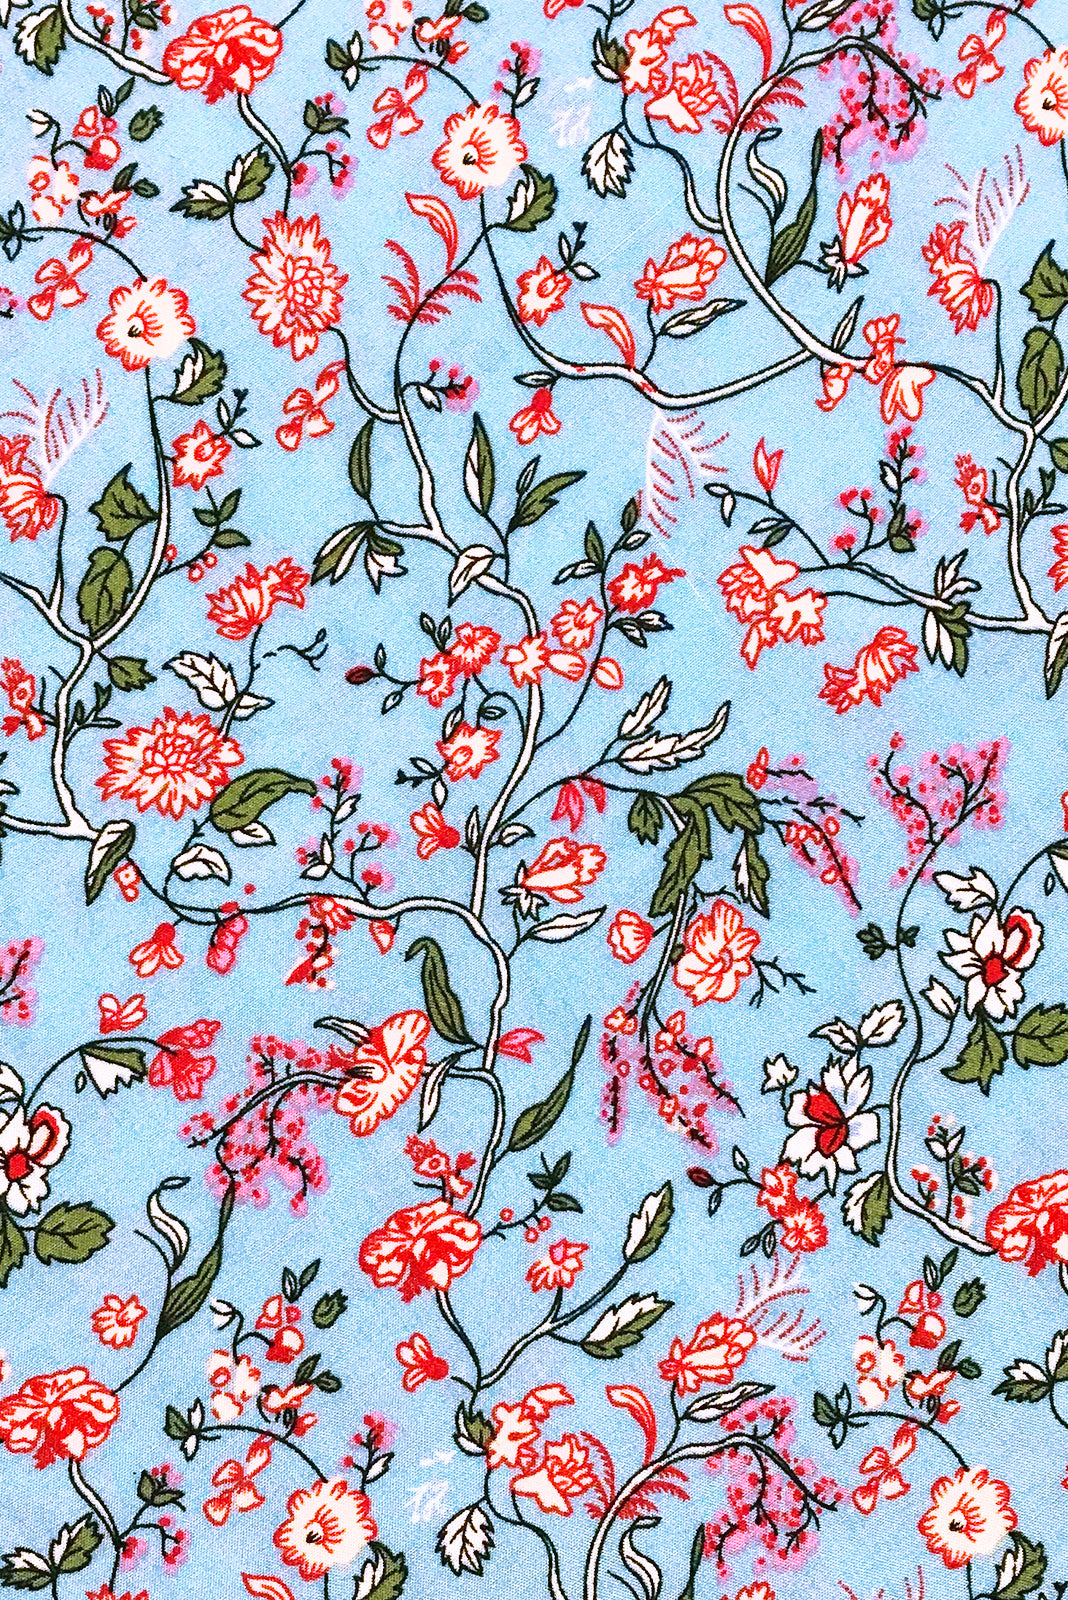 Fabric Swatch of Primrose Cornflower Blue Dress featuring woven 100% rayon in Sky blue base with pink floral vine print.